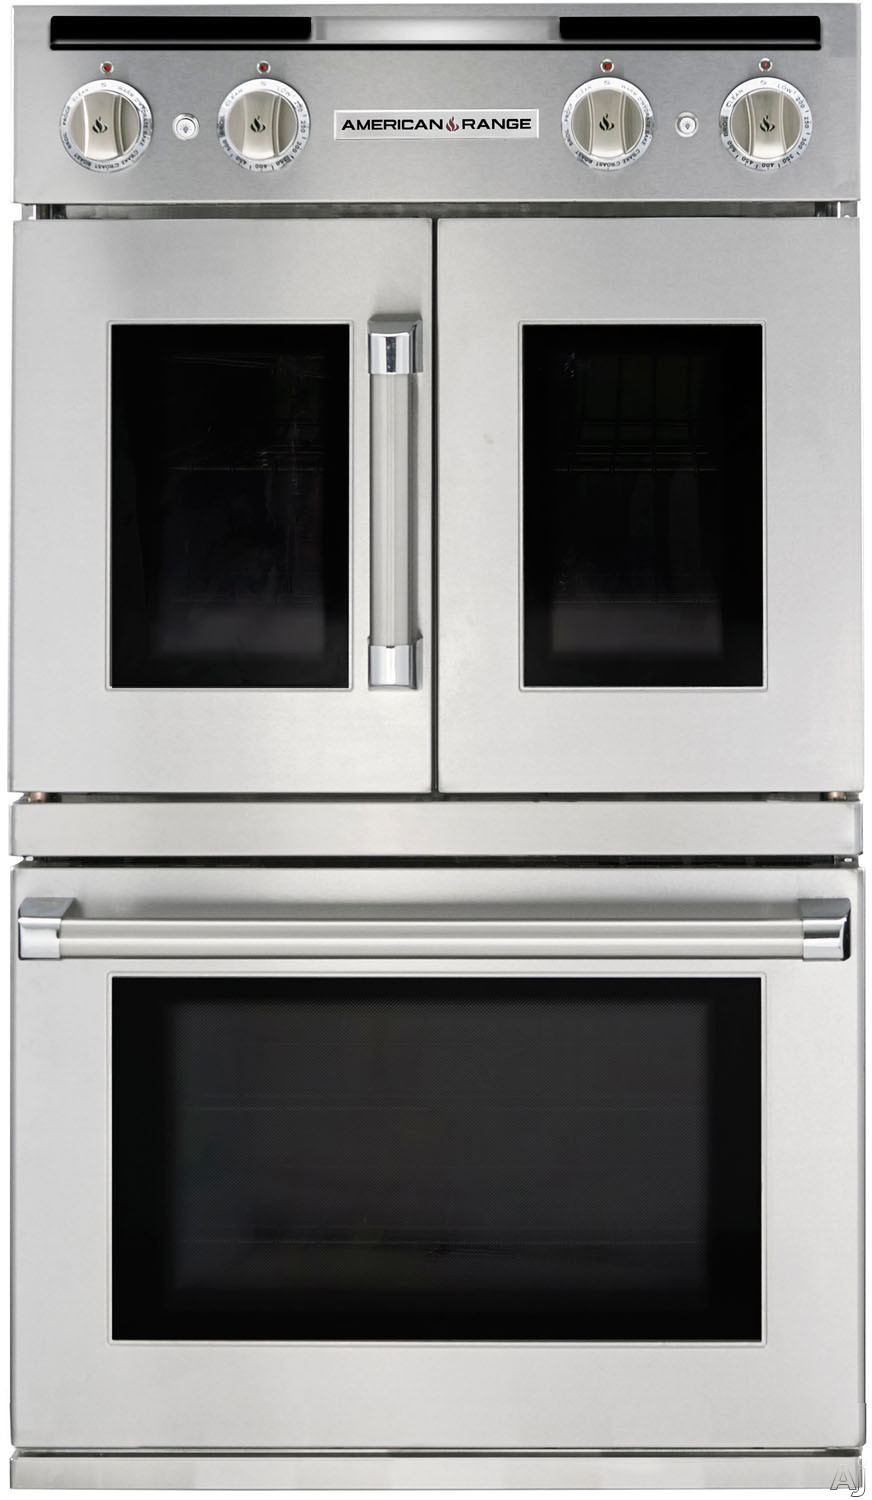 American Range Legacy Series AROFSG230L 30 Inch Double French/Chef Door Gas Wall Oven with 4.7 cu. ft. Capacity, Innovection Convection, Manual Clean, Infrared Broiler, Proofing and Porcelainized Inte